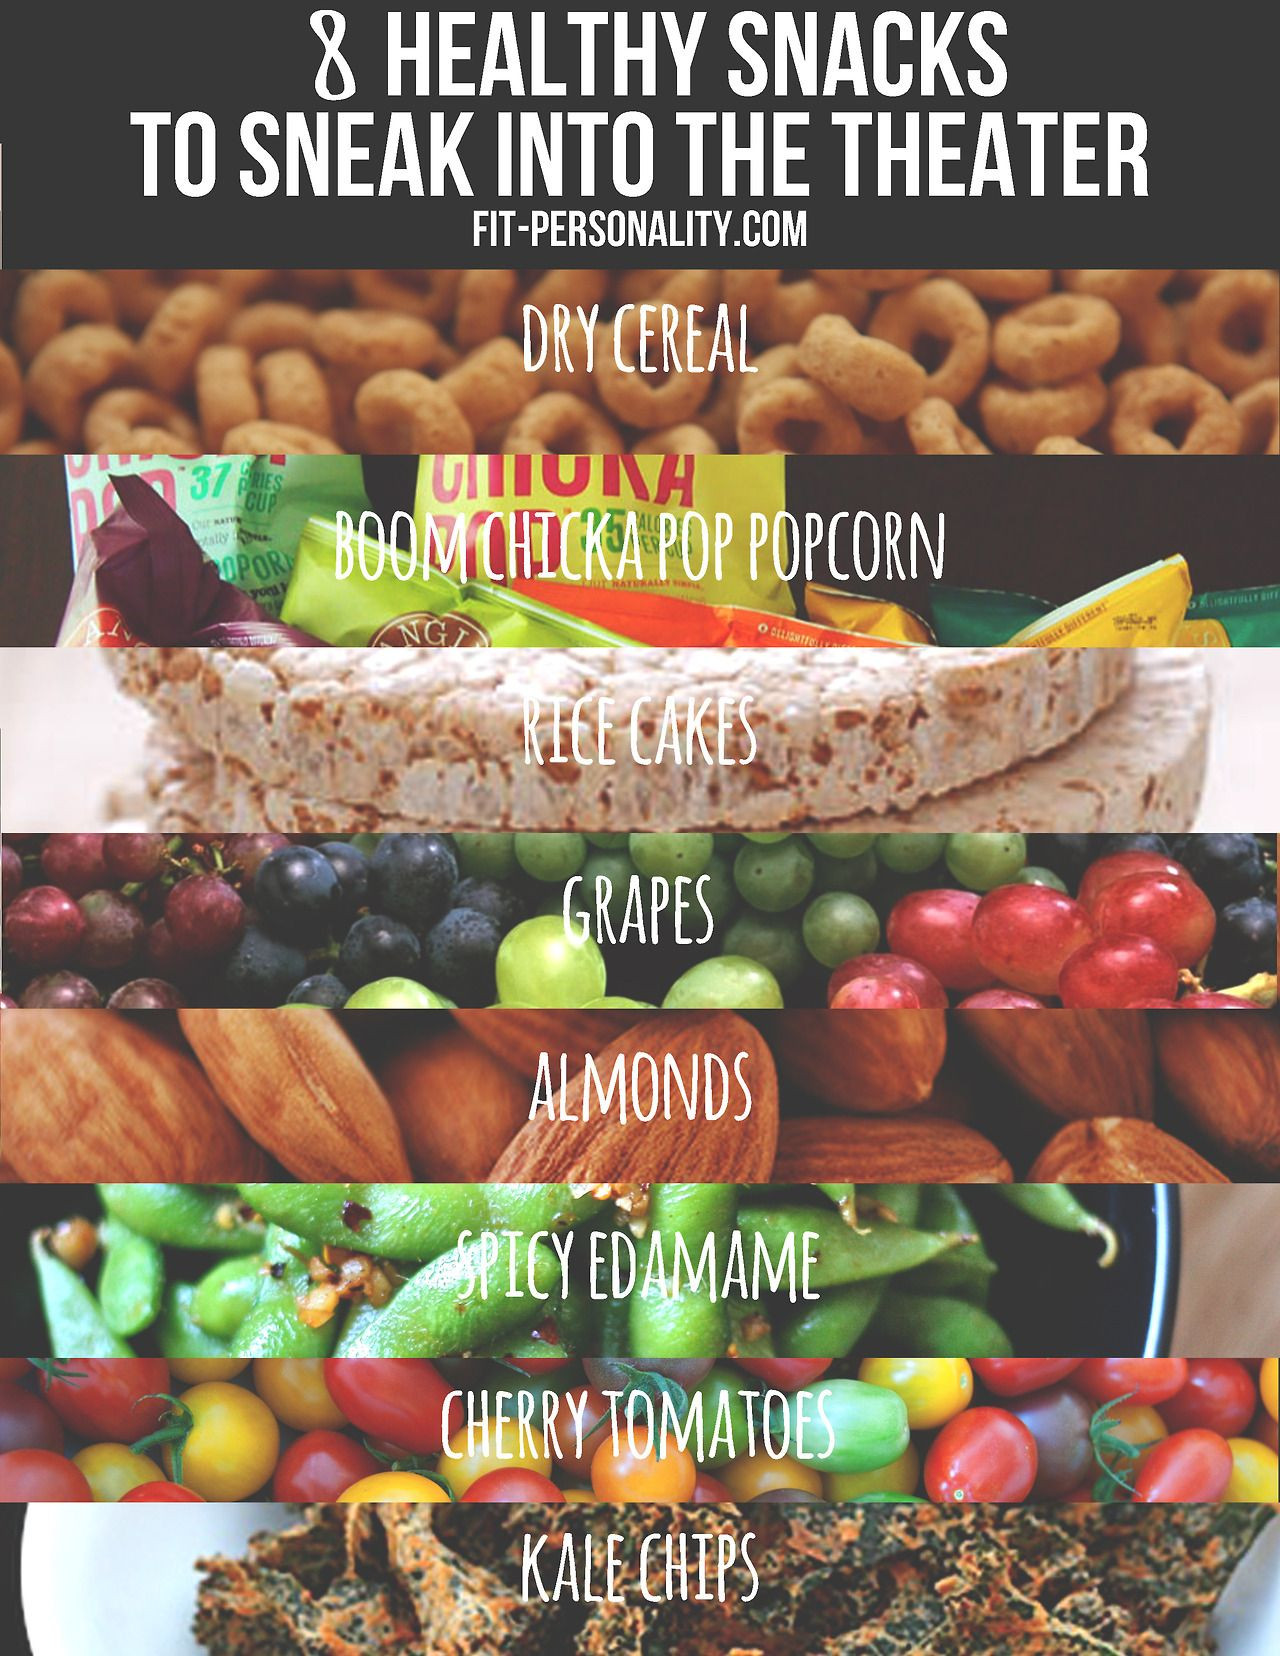 Healthy Movie Snacks To Sneak In  8 Healthy Snacks to sneak into the